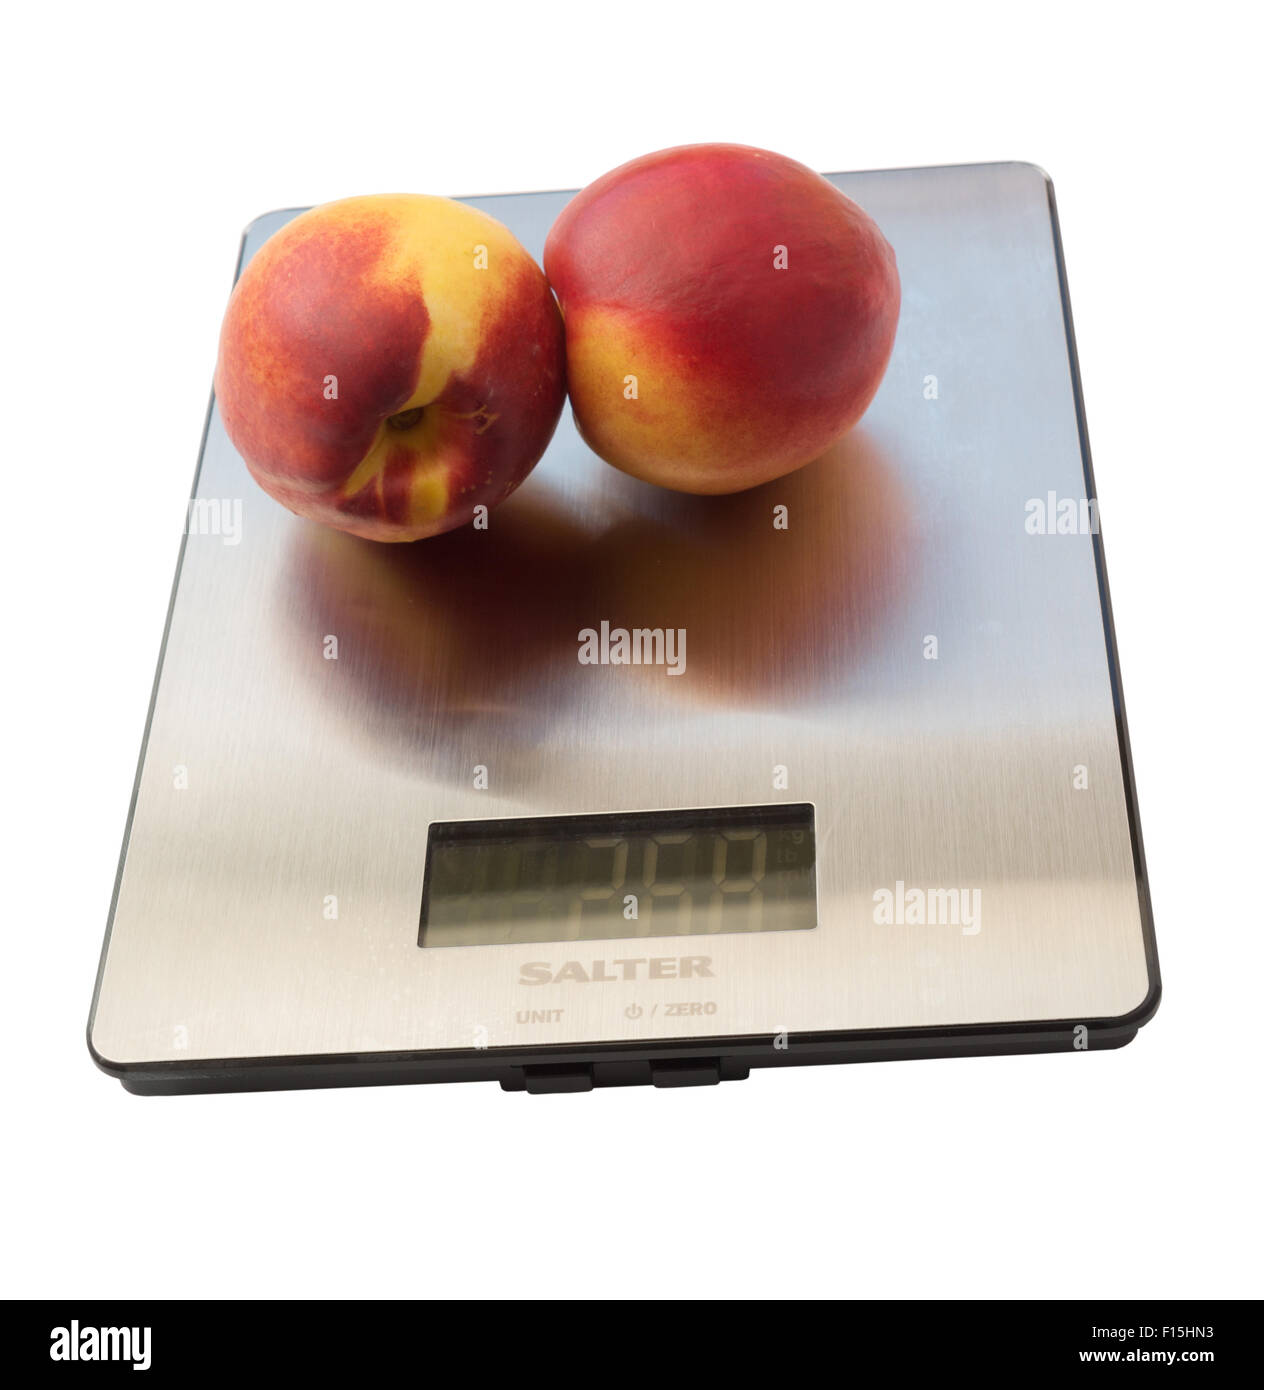 Salter Scale Stock Photos Amp Salter Scale Stock Images Alamy